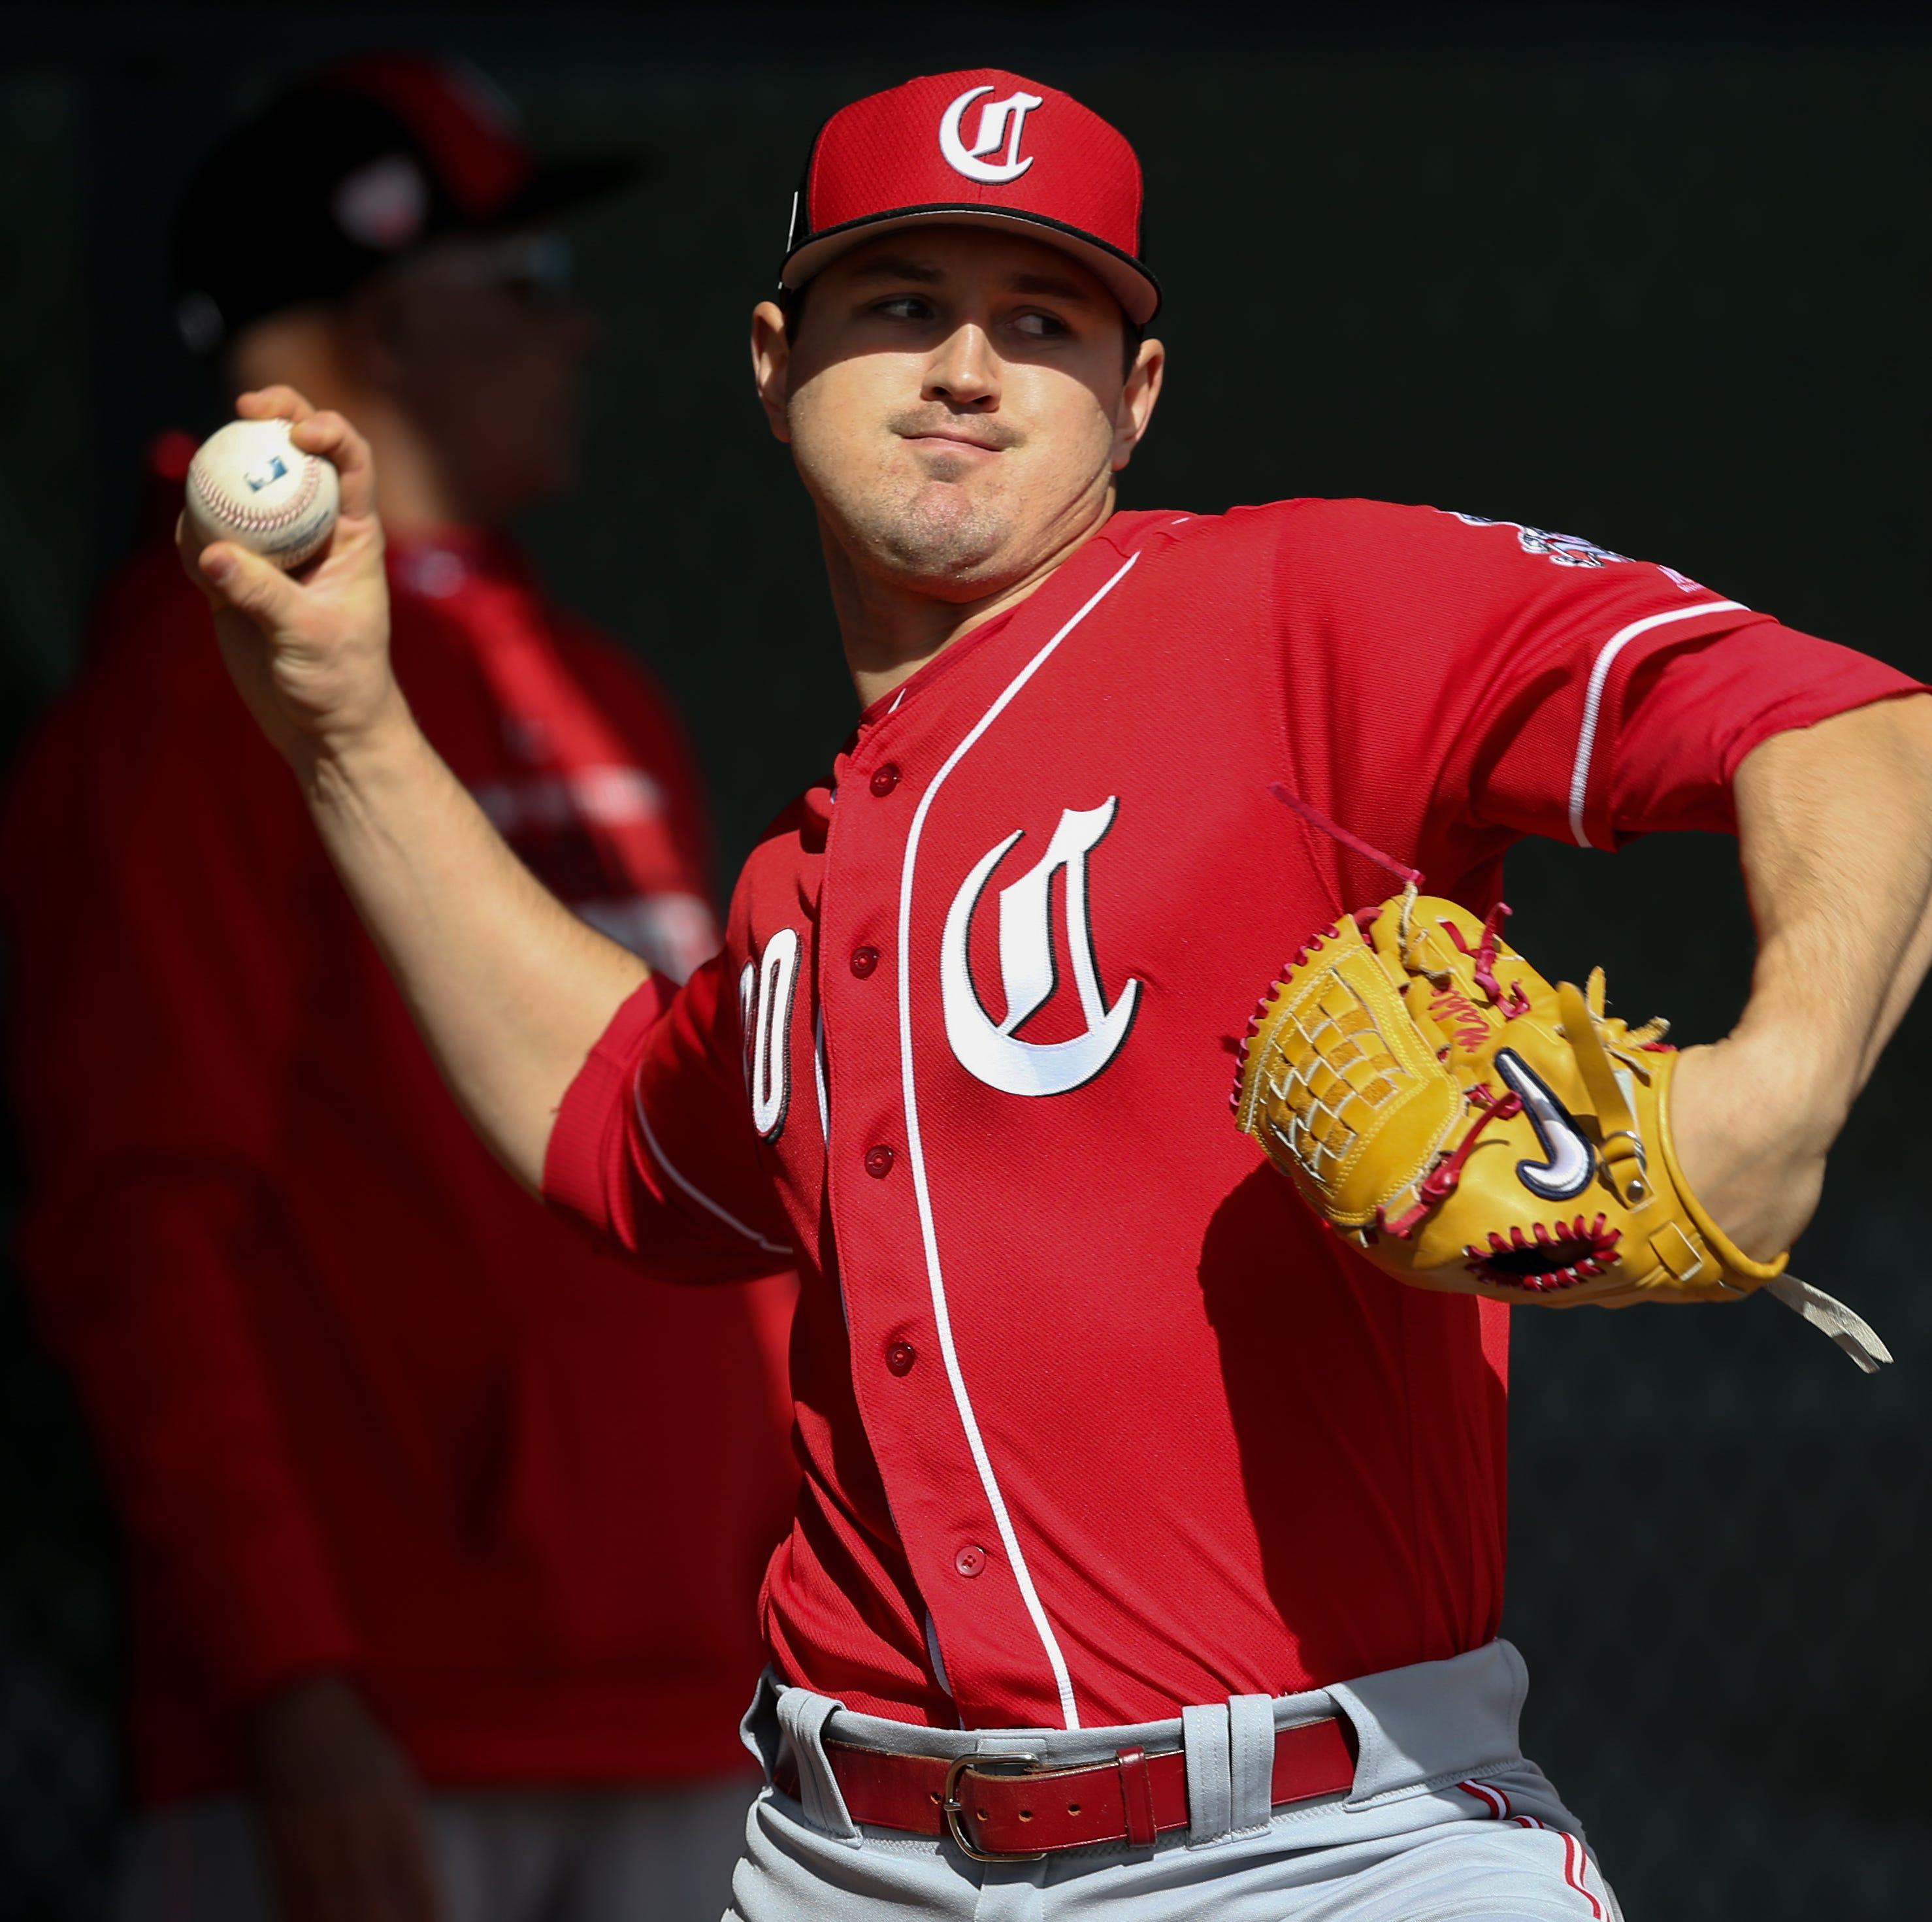 David Bell names Tyler Mahle as Cincinnati Reds' fifth member of pitching rotation